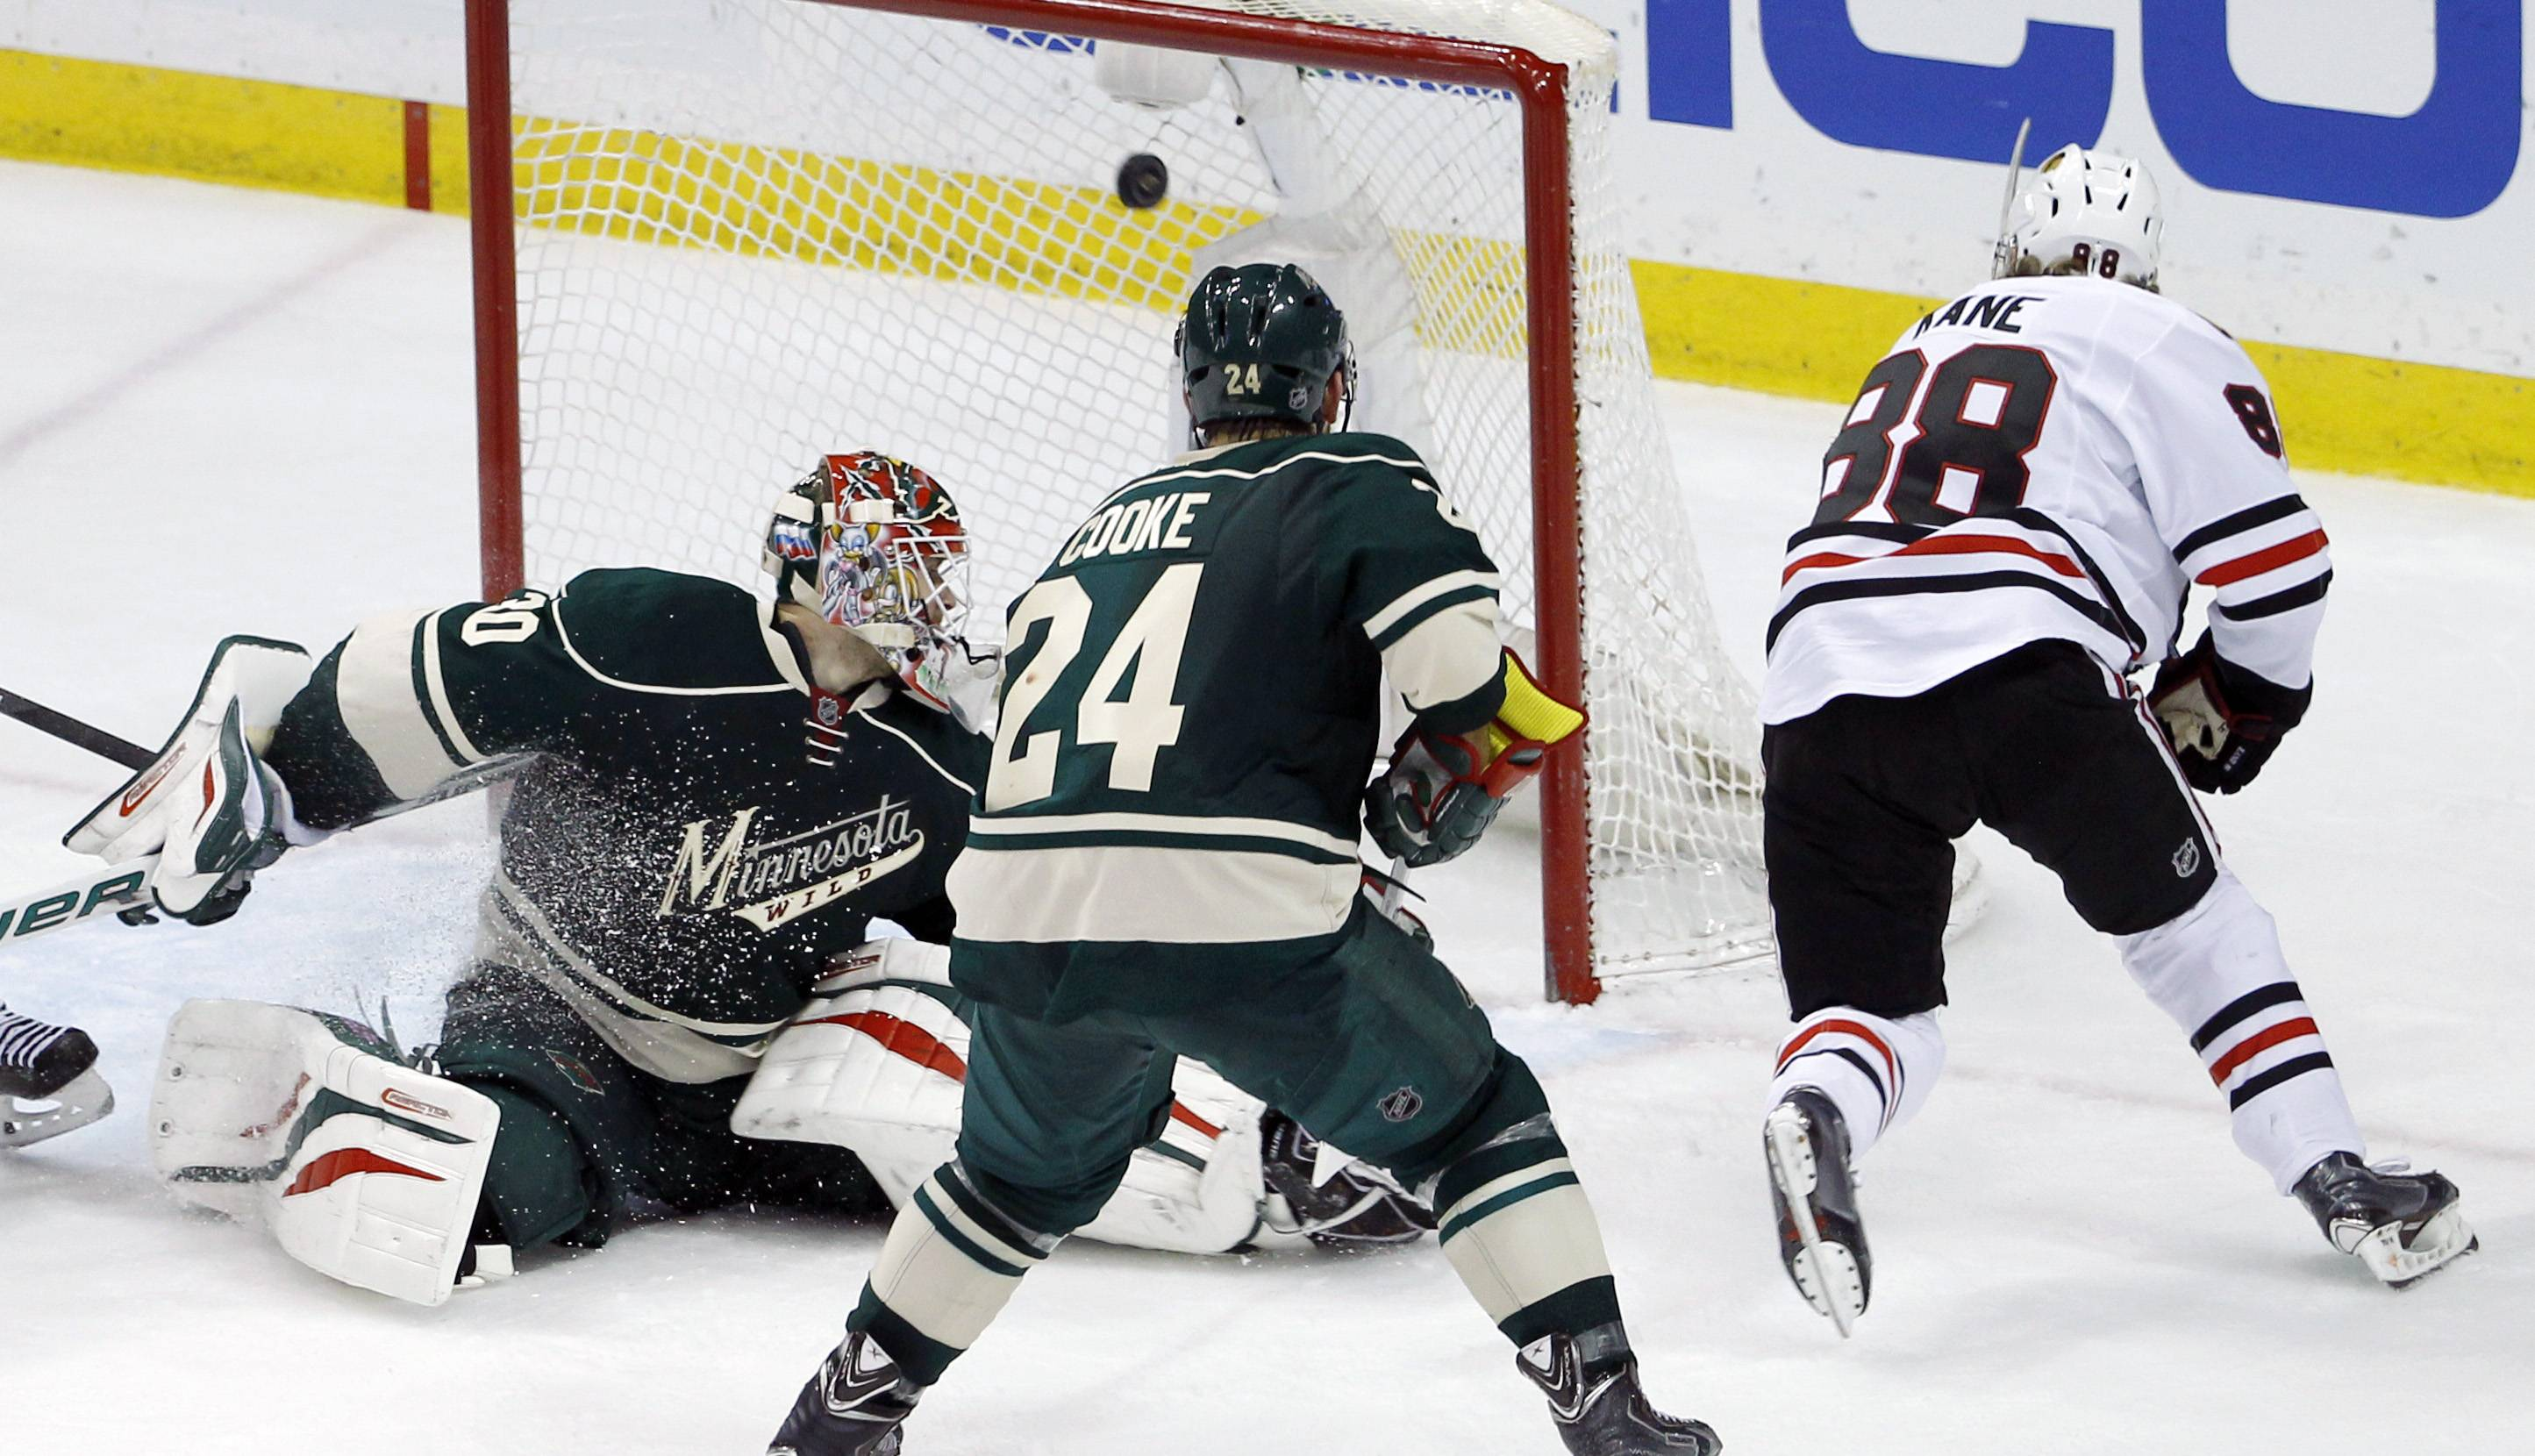 The game-winning shot by the Blackhawks' Patrick Kane gets past Minnesota Wild goalie Ilya Bryzgalov during overtime of Game 6 Tuesday night in St. Paul, Minn.